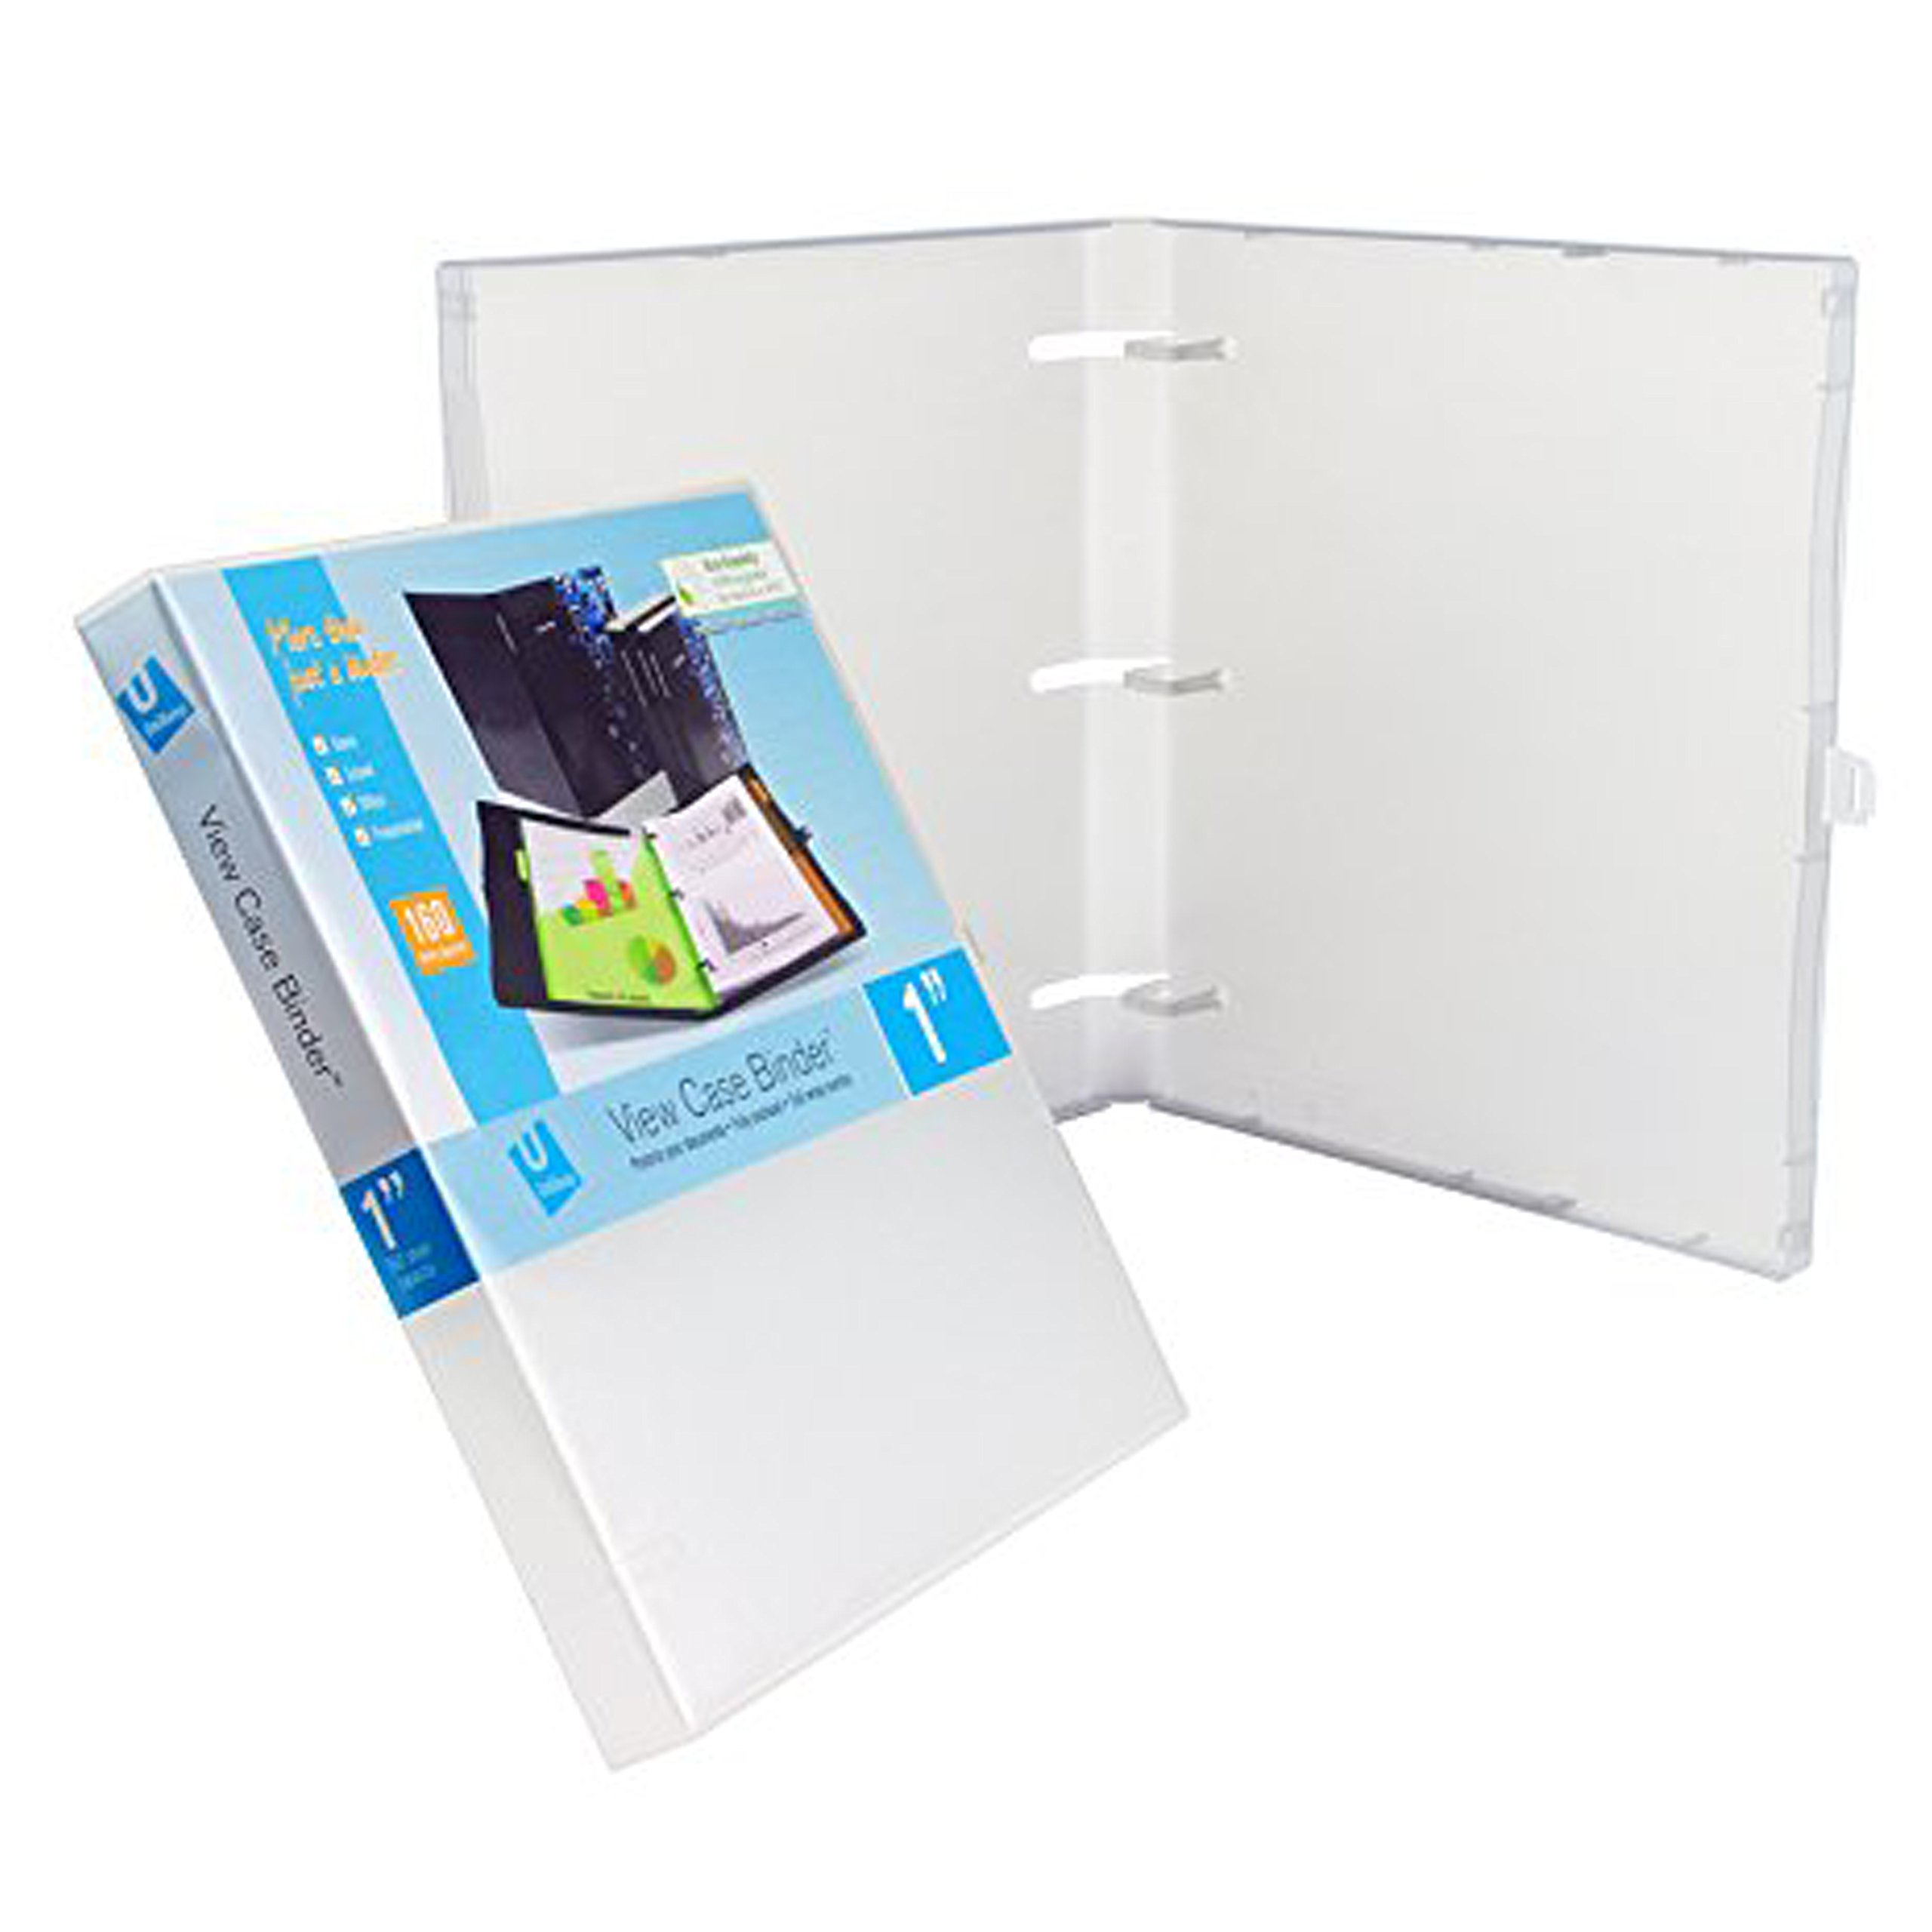 UniKeep 3 Ring Binder - Clear - Case View Binder - 1.0 Inch Spine - with Clear Outer Overlay - Box of 20 Binders by UniKeep